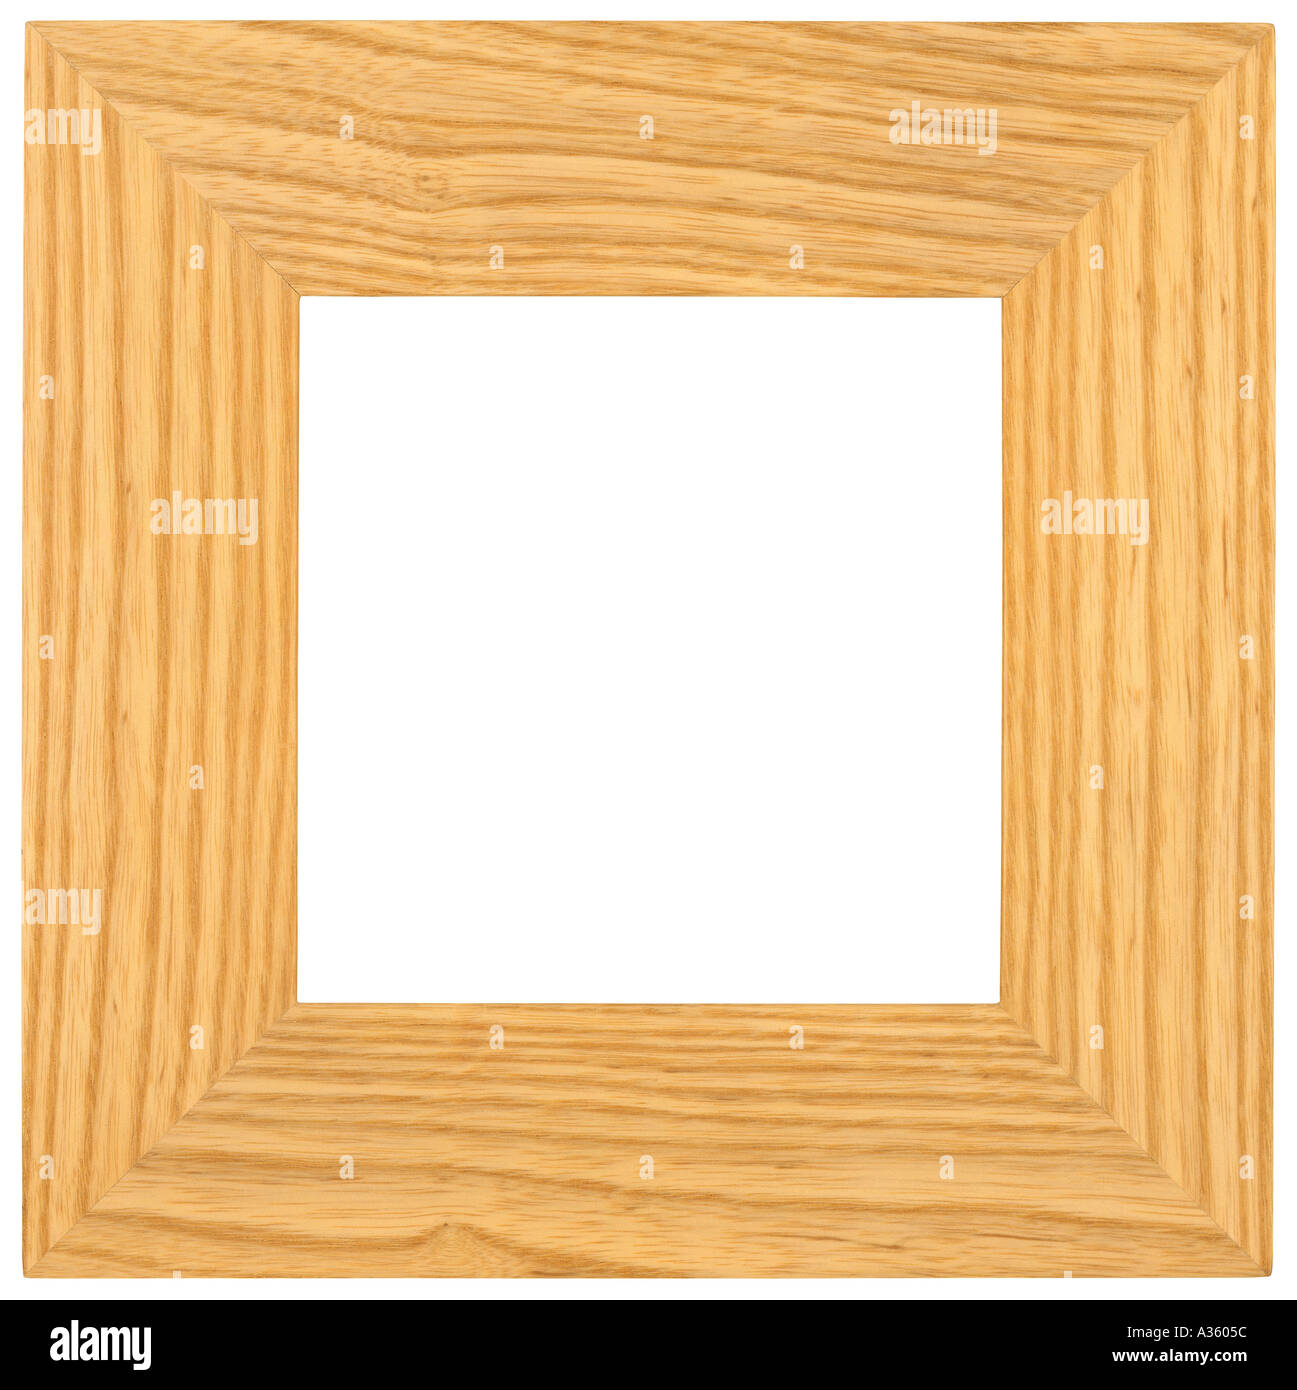 Thick wooden picture frames gallery craft decoration ideas thick wooden picture frames images craft decoration ideas thick wooden picture frames gallery craft decoration ideas jeuxipadfo Gallery